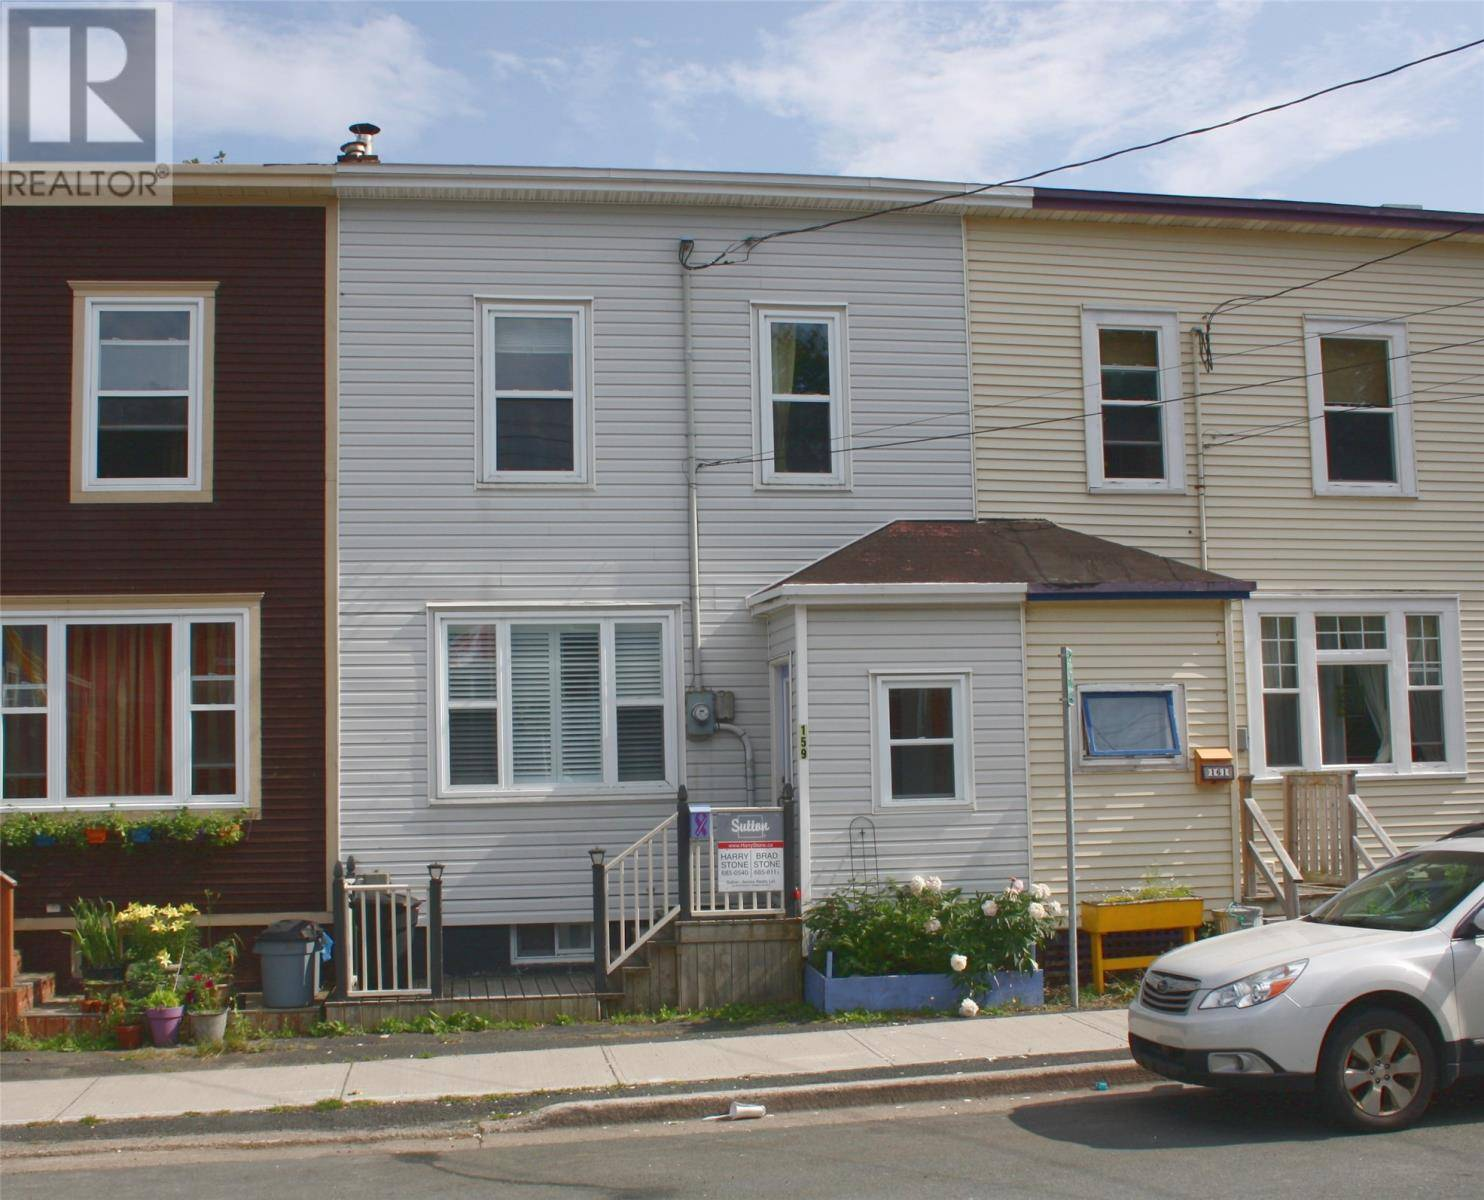 House for sale at 159 Craigmillar Ave St. John's Newfoundland - MLS: 1200091